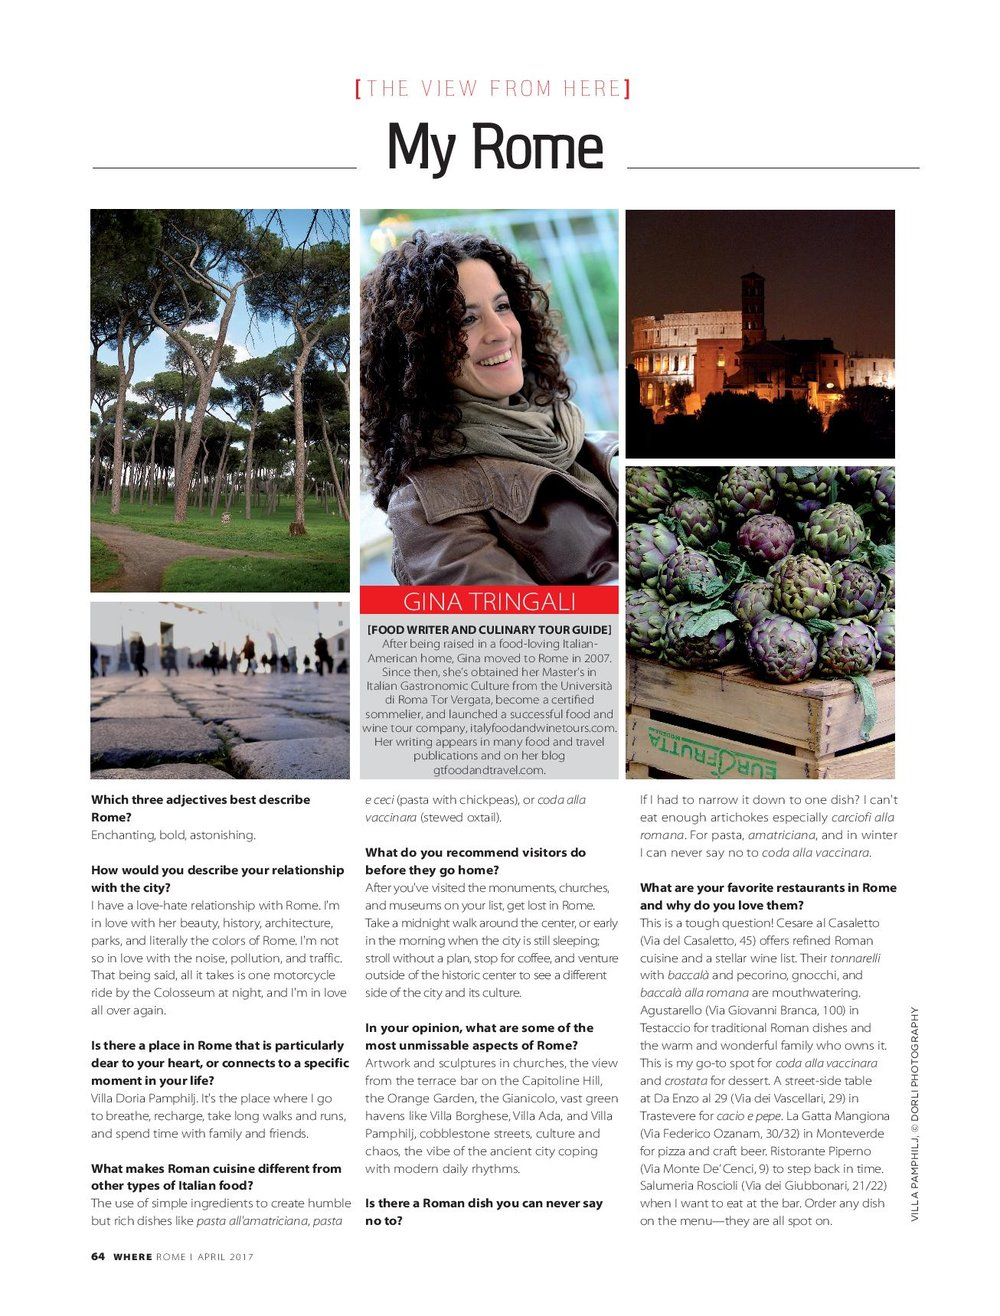 My Rome, Gina Tringali, Where Rome, April 2017-page-001.jpg